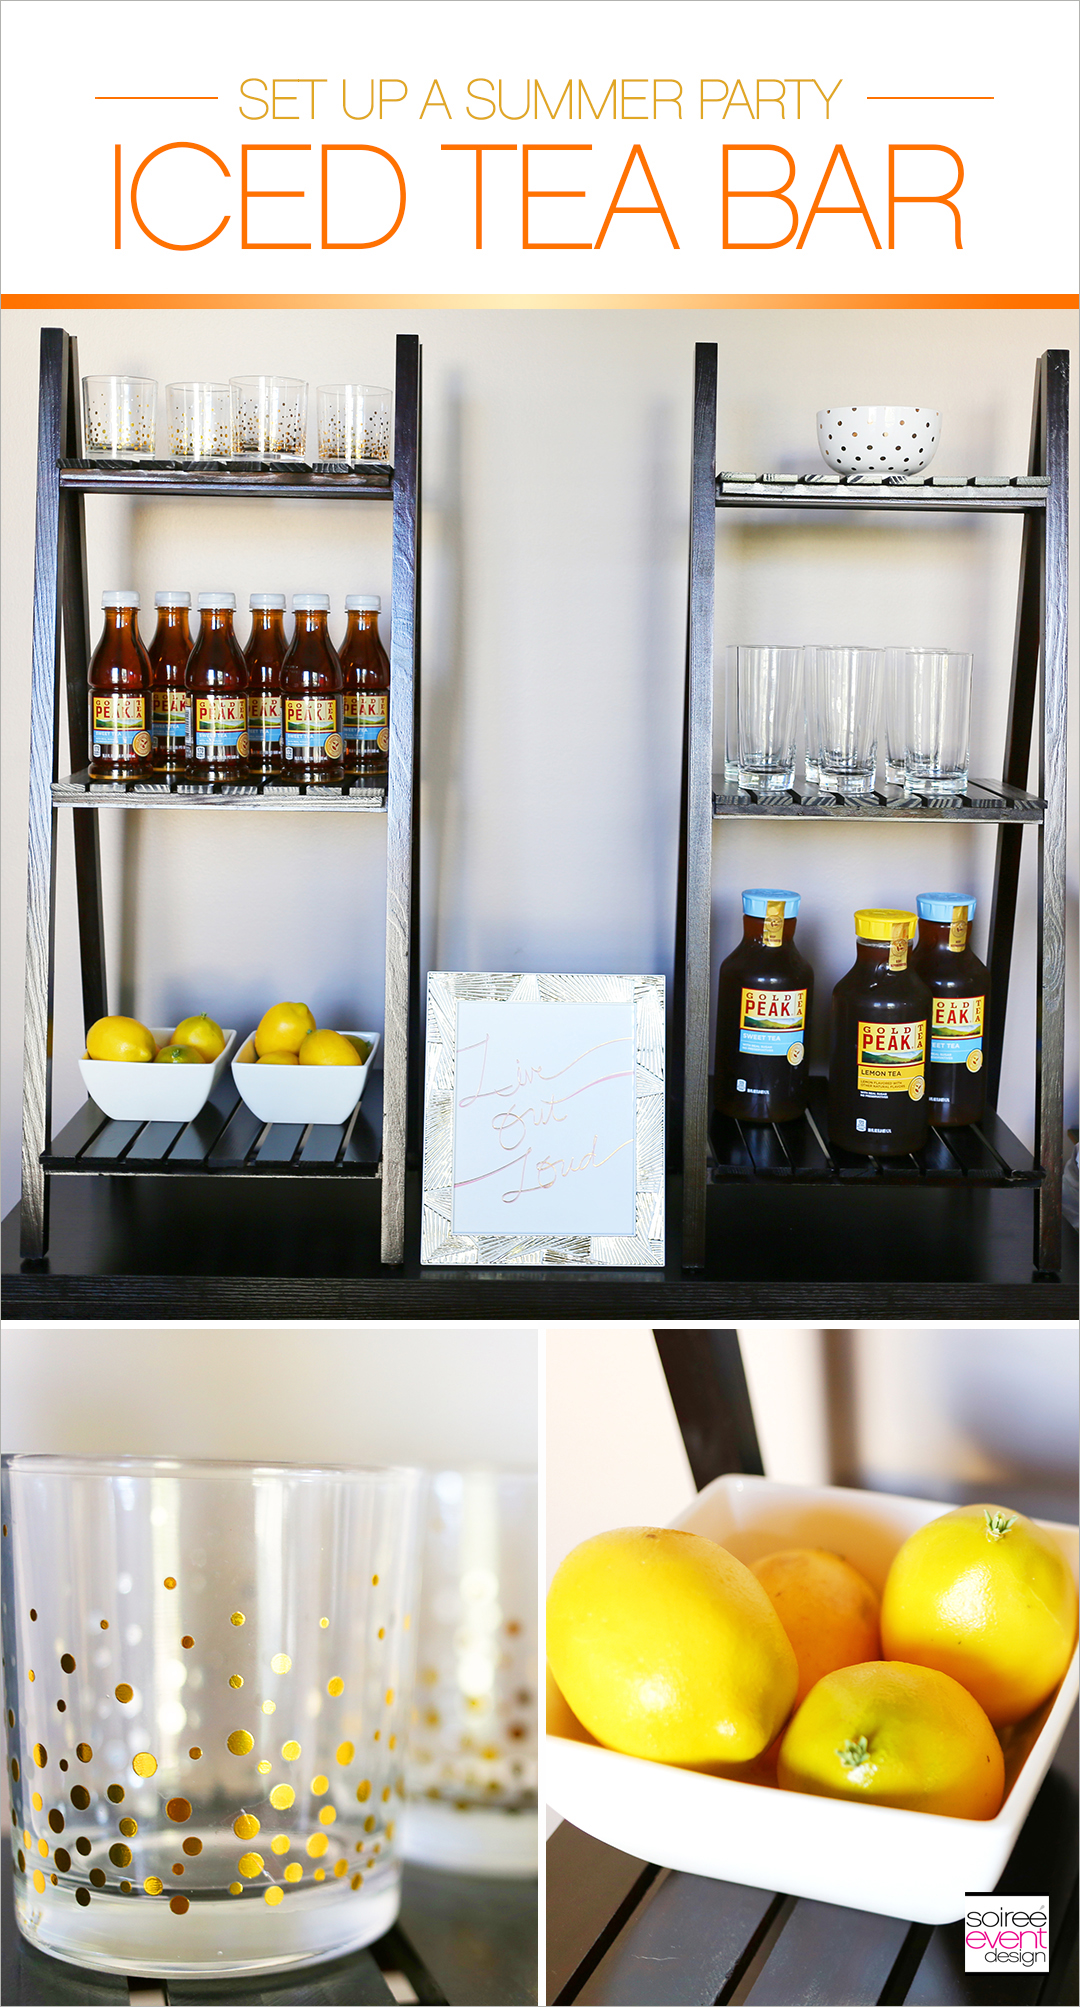 Host a Summer Dinner Party - Iced Tea Bar